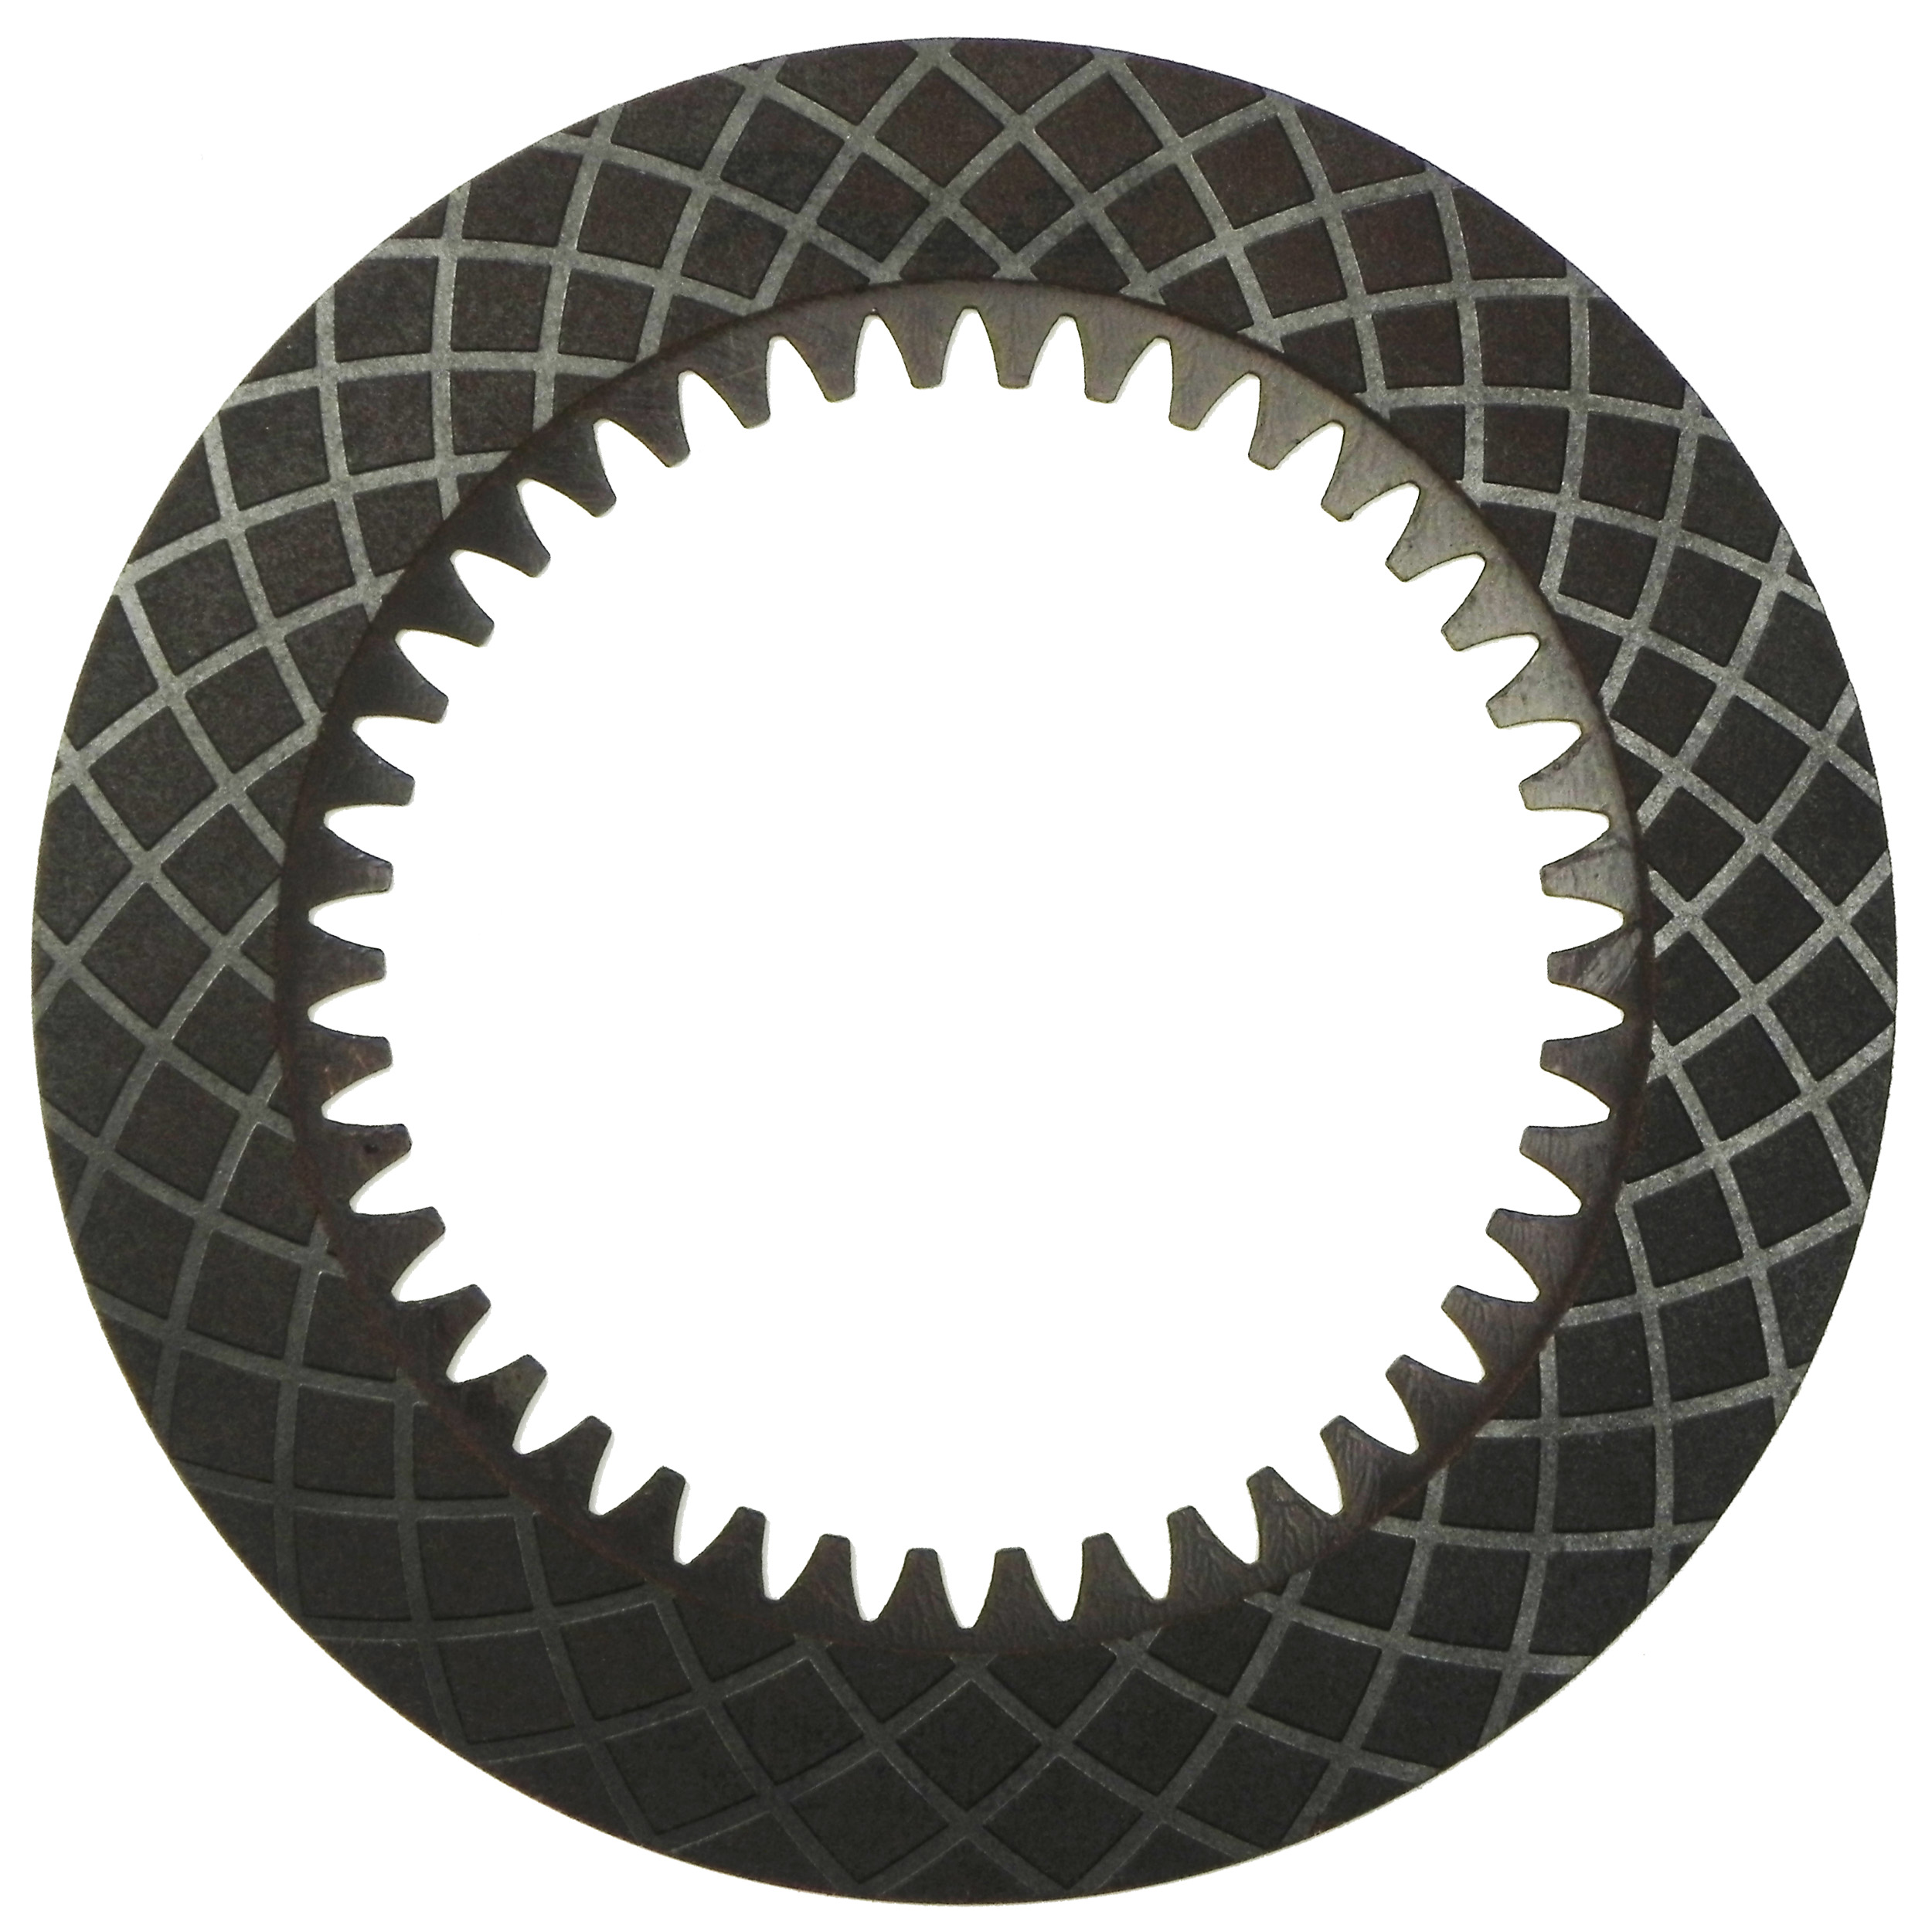 5 SPEED B97A, BDHA, BDGA GPX Friction Clutch Plate